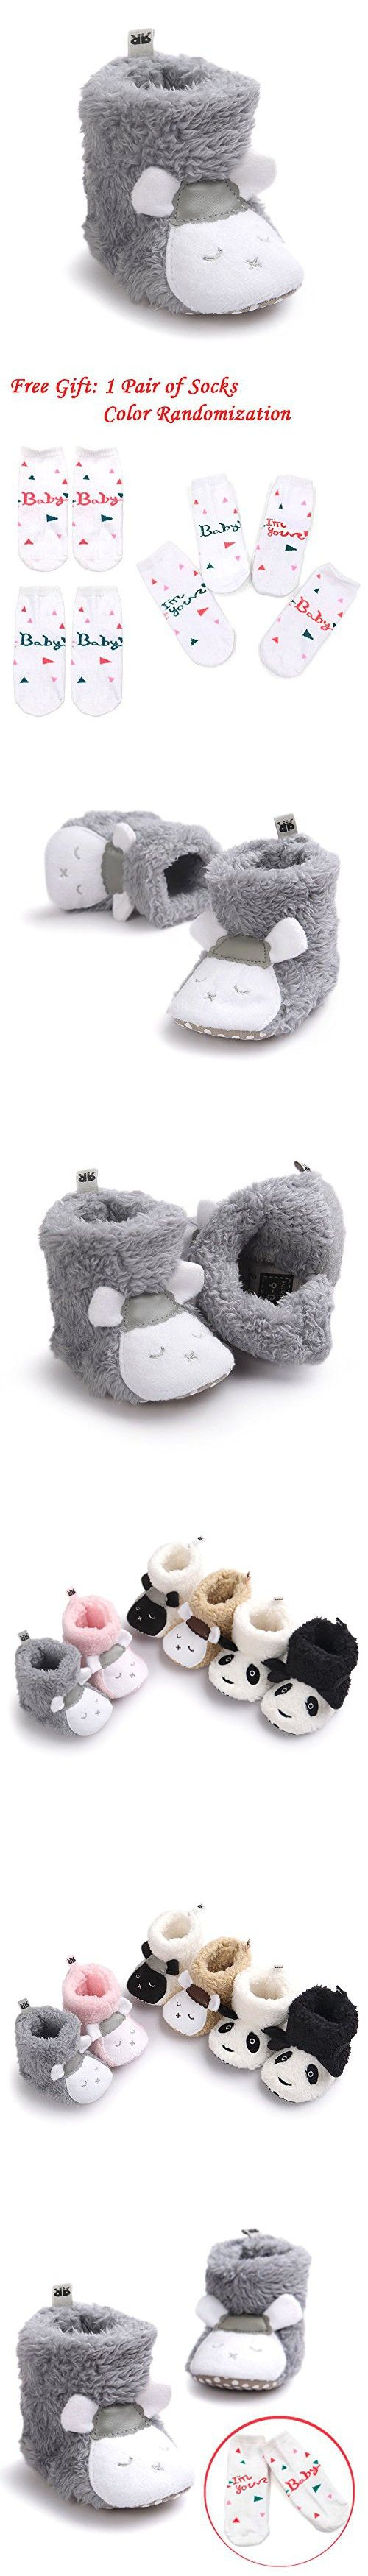 LIVEBOX Baby Boy and Girls' Premium Soft Sole Cartoon Animal Anti-Slip Mid Calf Warm Winter Infant Prewalker Toddler Snow Boots With Free Gift Socks (S: 0~6 months, Gray Sheep)